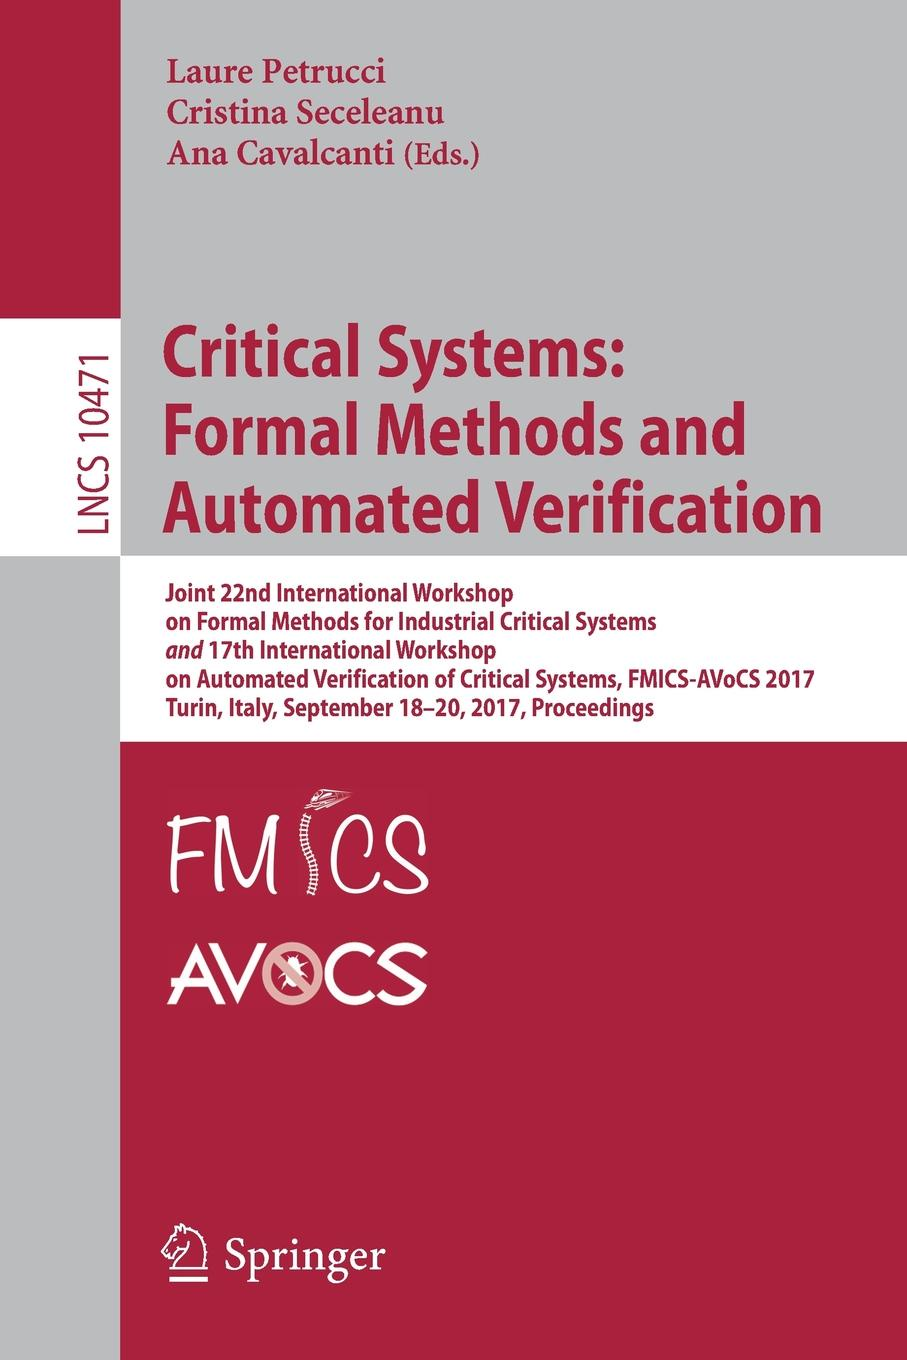 Critical Systems. Formal Methods and Automated Verification : Joint 22nd International Workshop on Formal Methods for Industrial Critical Systems and 17th International Workshop on Automated Verification of Critical Systems, FMICS-AVoCS 2017, Turi... automated recognition of handwritten malayalam scripts